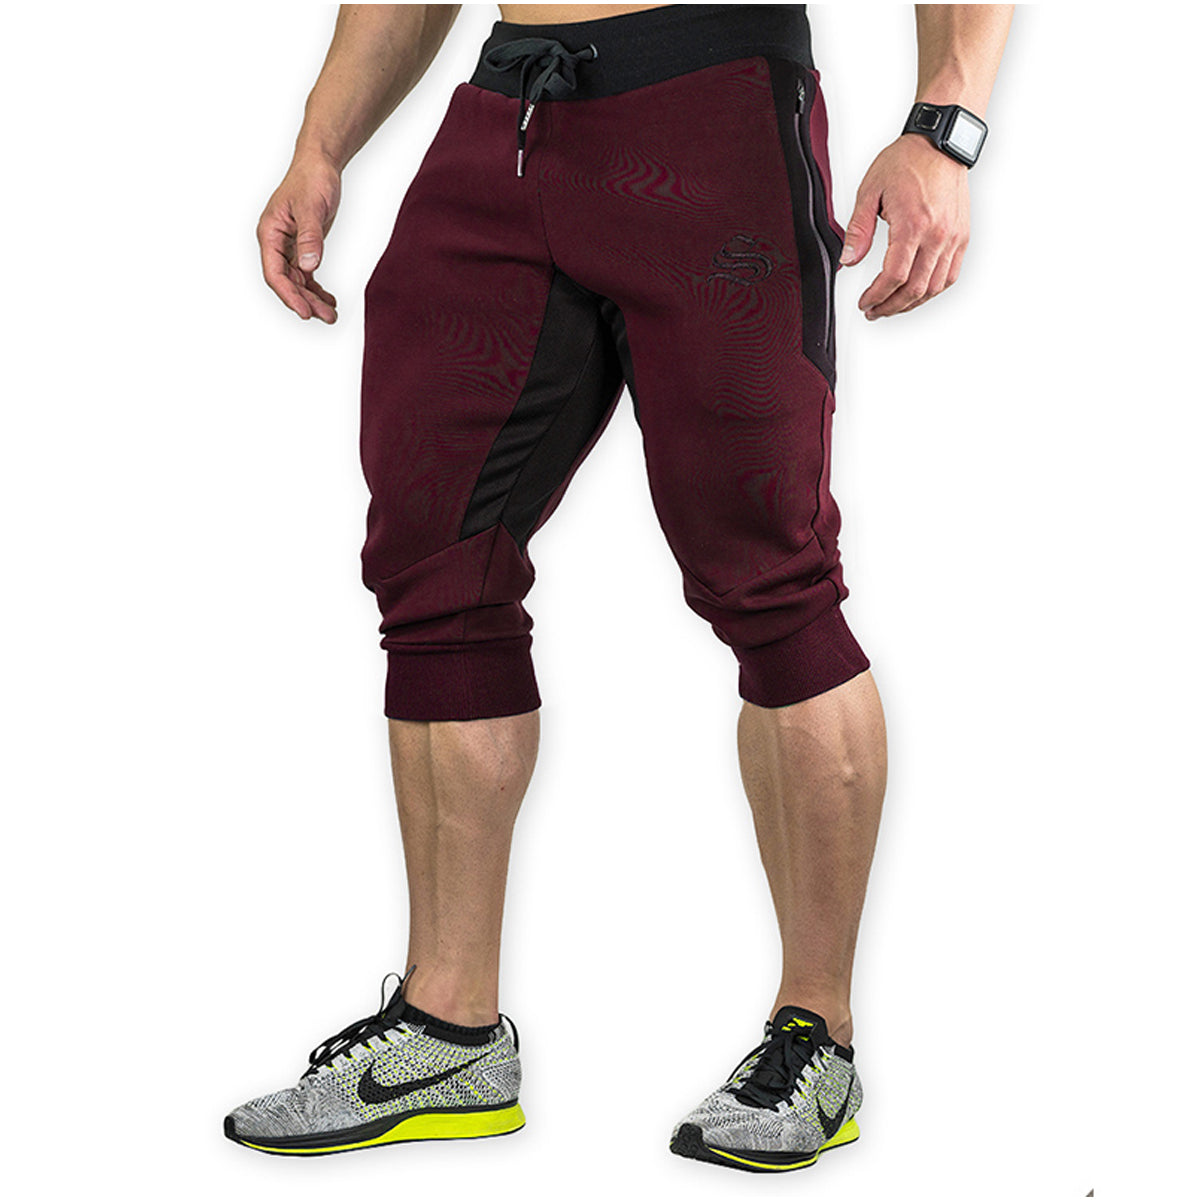 Men's Casual Knee Length Jogger Shorts with 2 Side Pockets